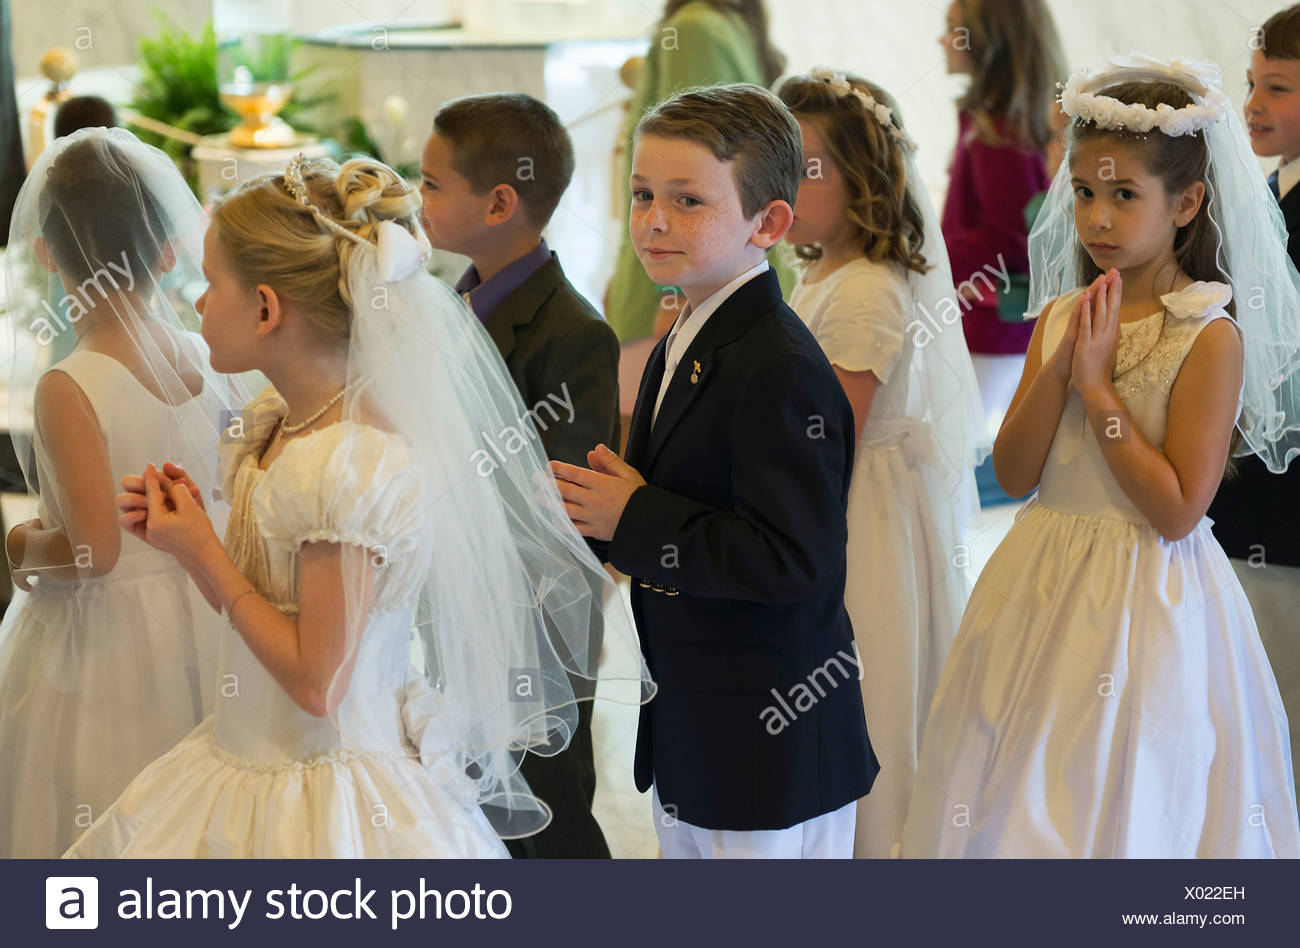 Catholic boys and girls receiving the sacrament of first holy communion. - Stock Image